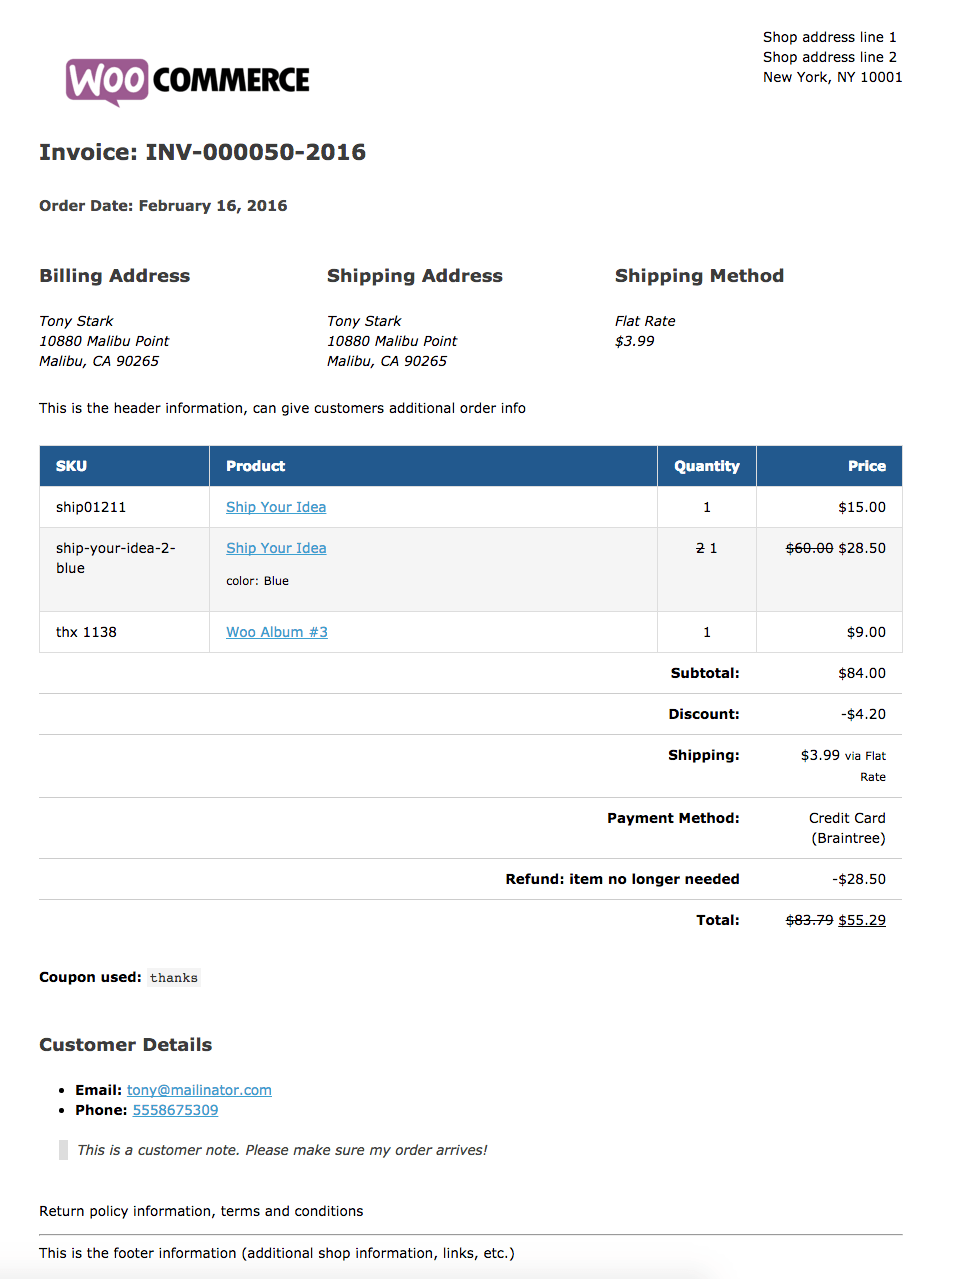 Aldiablosus  Sweet Print Invoices Amp Packing Lists  Woocommerce With Foxy View A Sample Invoice  With Delightful Receipt Printing Also Receipt Paper Joint In Addition Va Disability Concurrent Receipt And Receipt Generator Software As Well As Wal Mart Receipt Additionally Towing Receipt Template From Woocommercecom With Aldiablosus  Foxy Print Invoices Amp Packing Lists  Woocommerce With Delightful View A Sample Invoice  And Sweet Receipt Printing Also Receipt Paper Joint In Addition Va Disability Concurrent Receipt From Woocommercecom